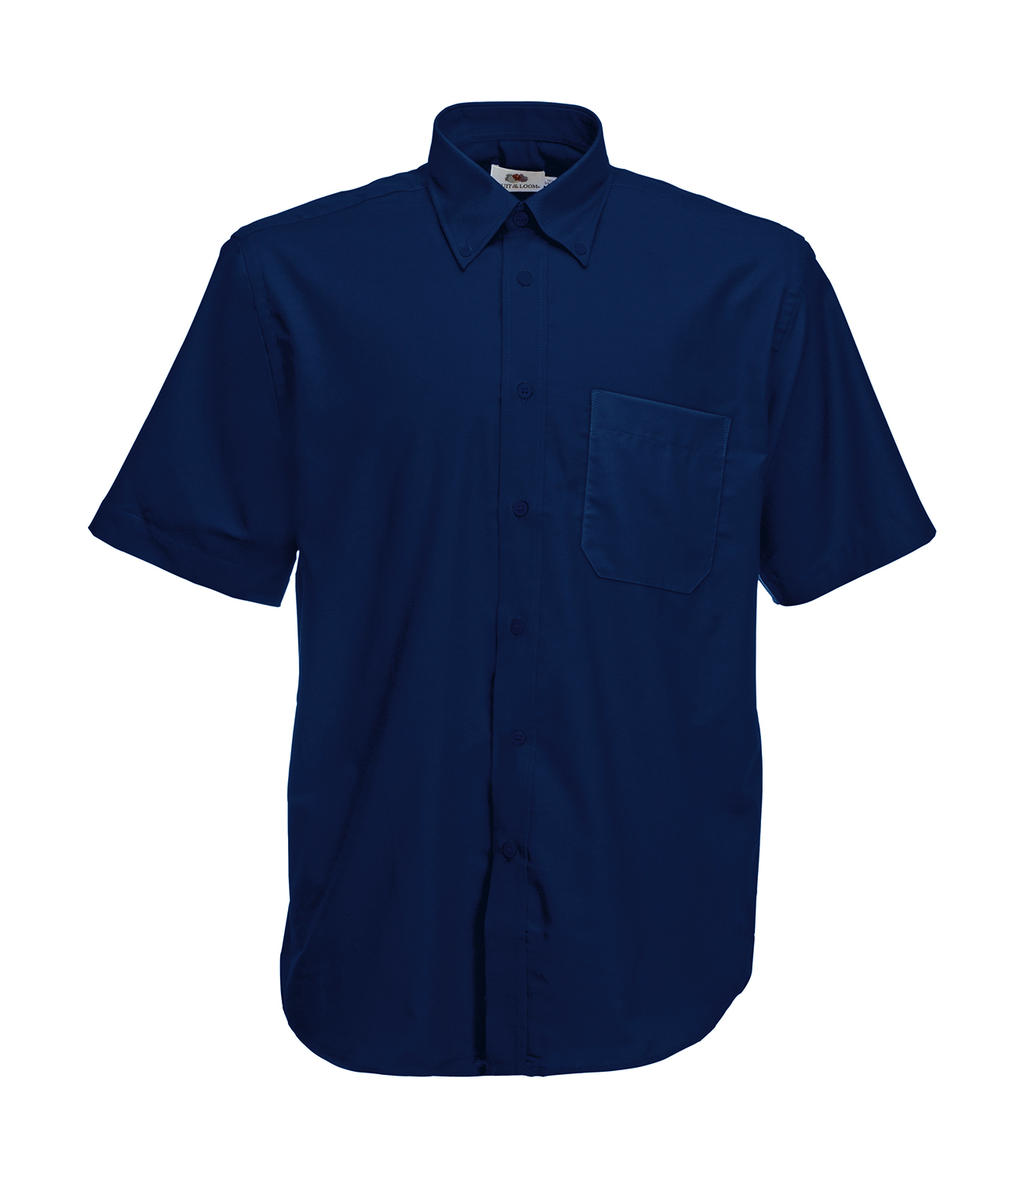 Fruit of the Loom Oxford Shirt Short Sleeve